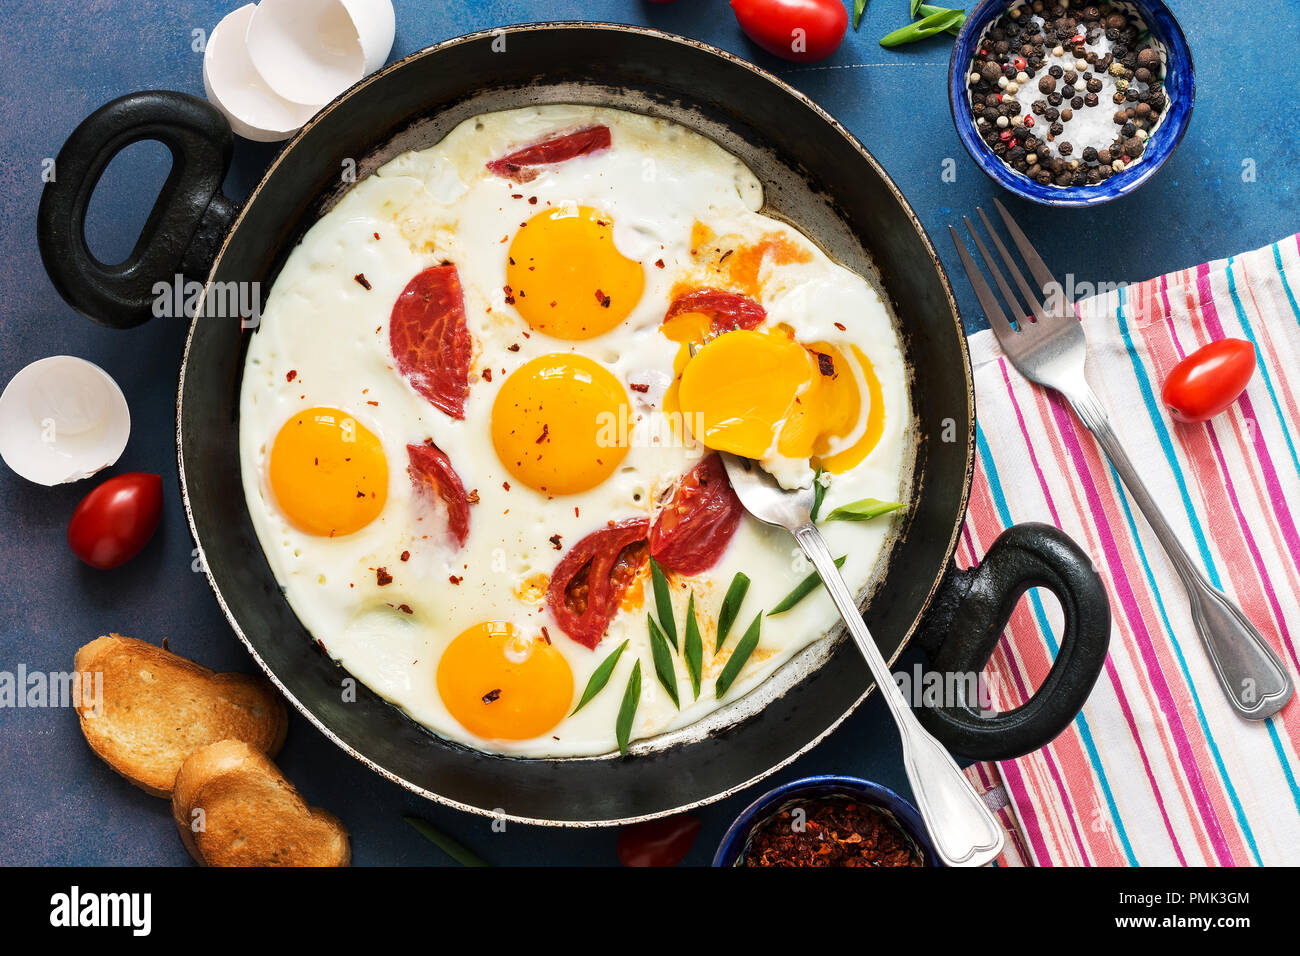 Fried eggs with cherry tomatoes in a pan. Fresh and hearty Breakfast. The view from the top - Stock Image